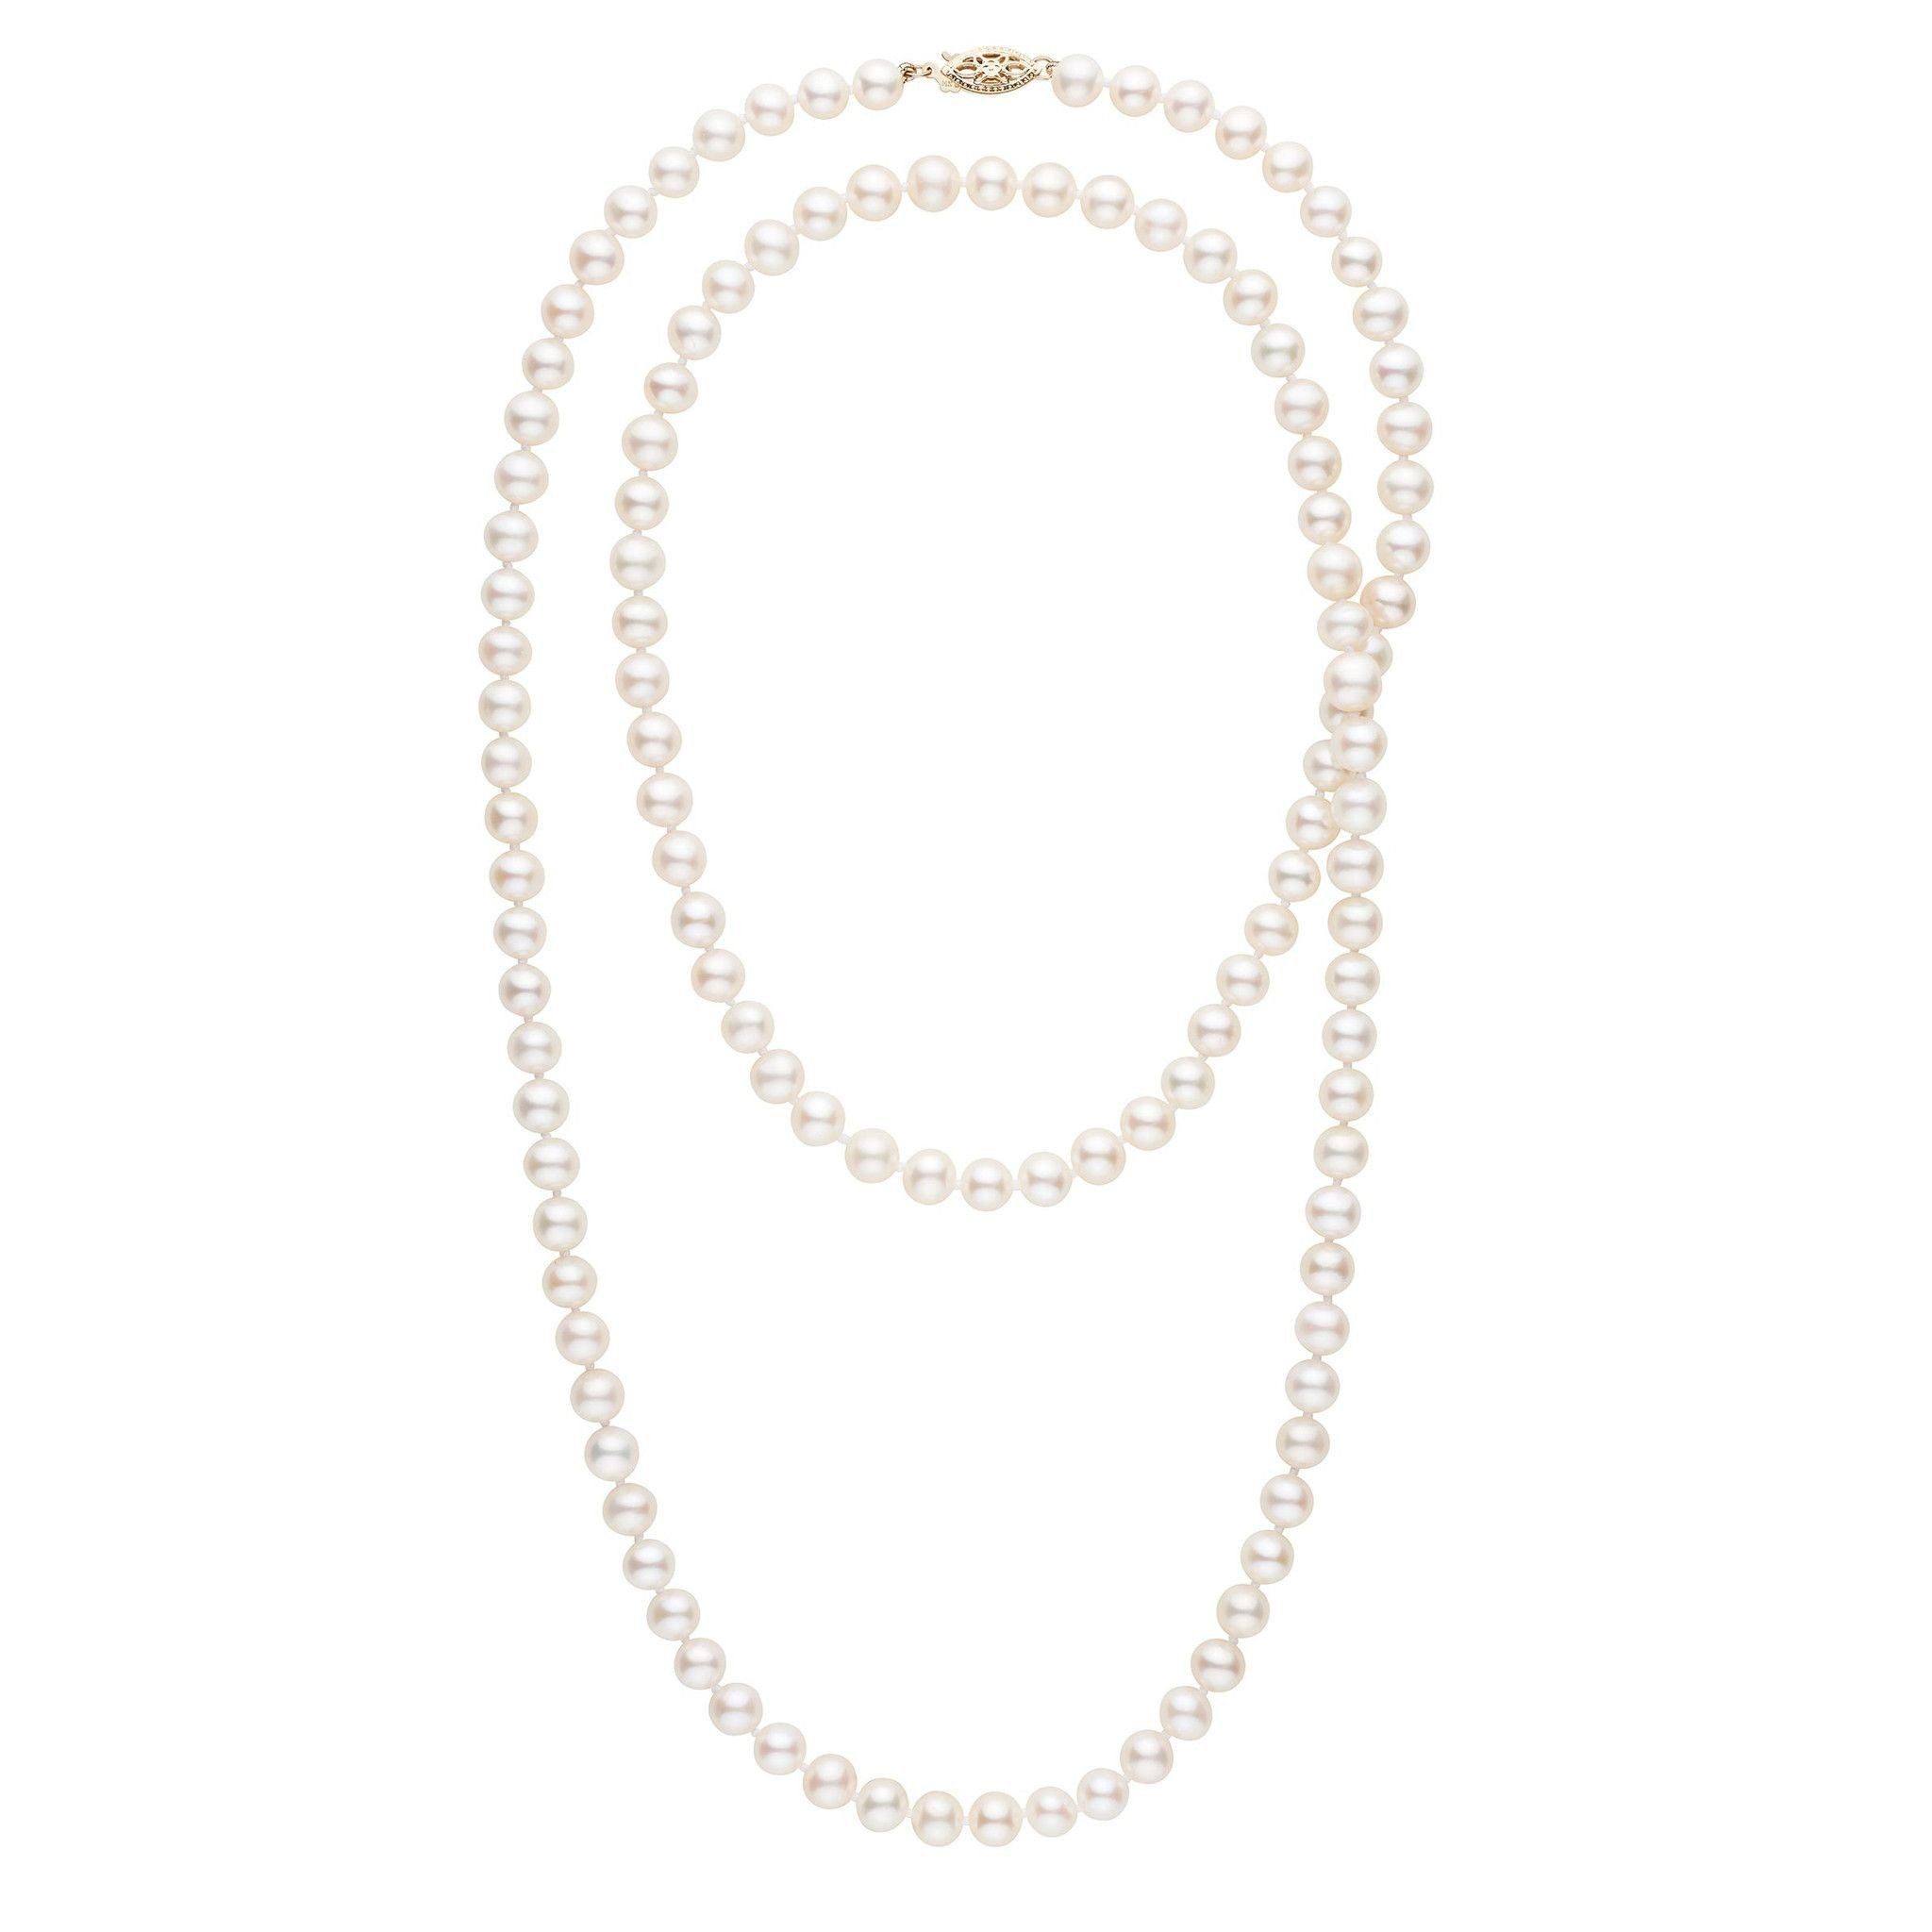 35-inch 6.5-7.0 mm AA+ White Freshwater Pearl Necklace